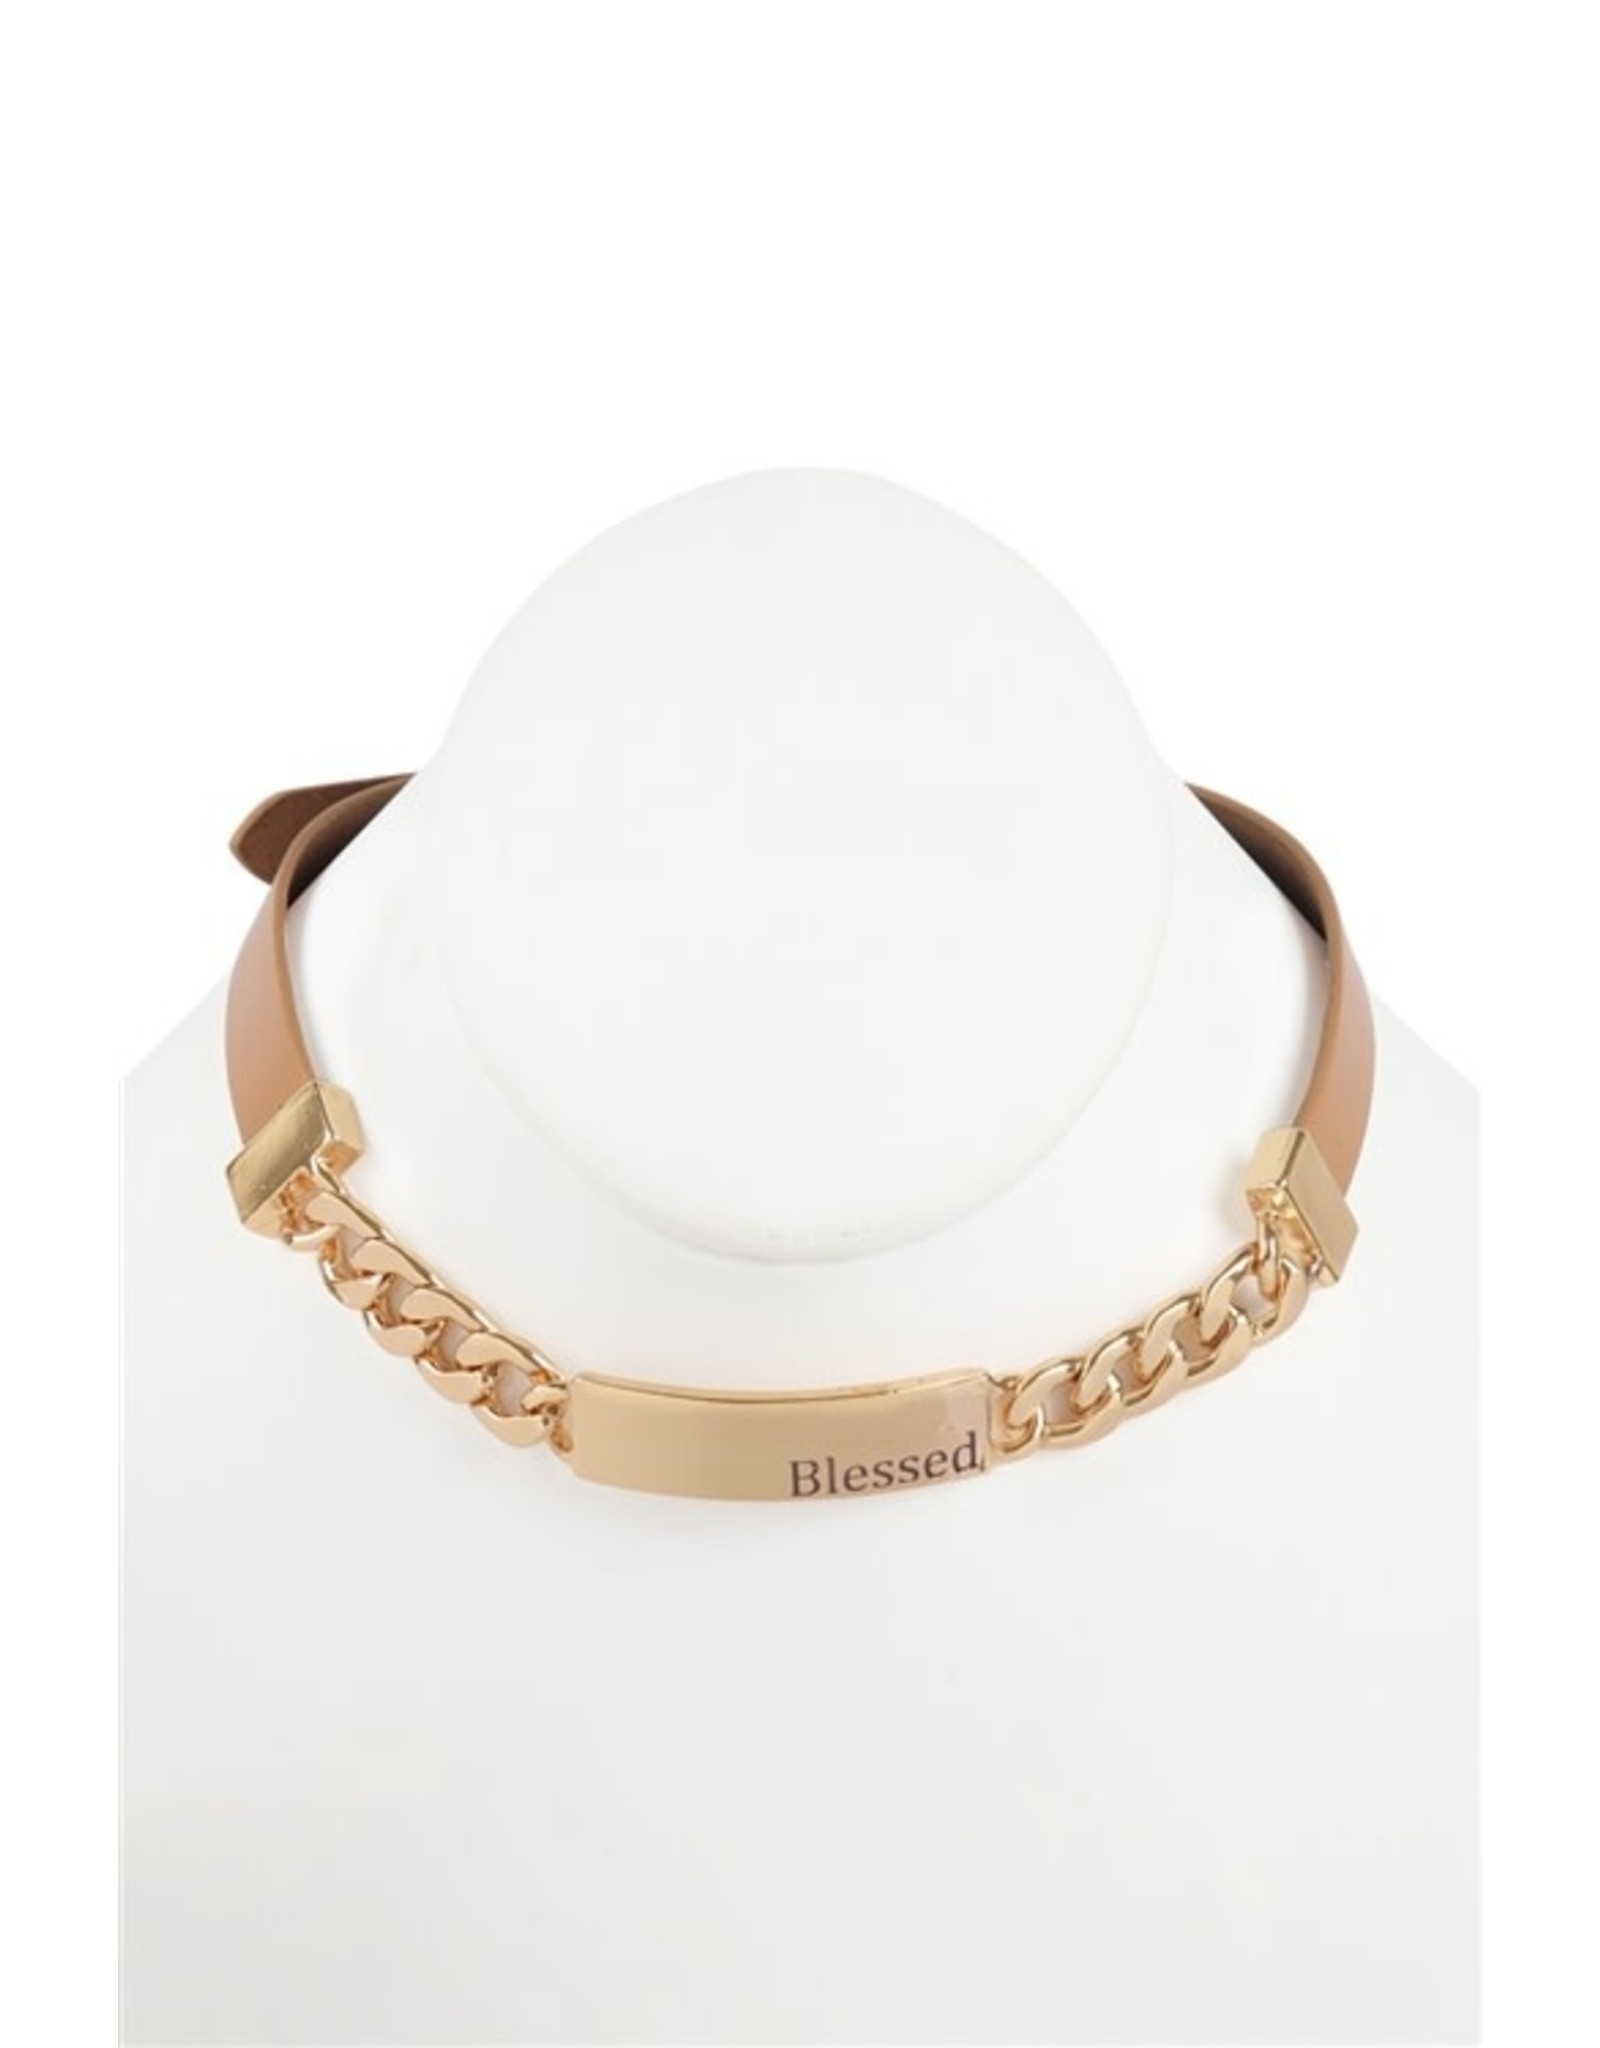 Riah Fashion Convertible Blessed Charm Bracelet/Choker Color: Tan/Silver